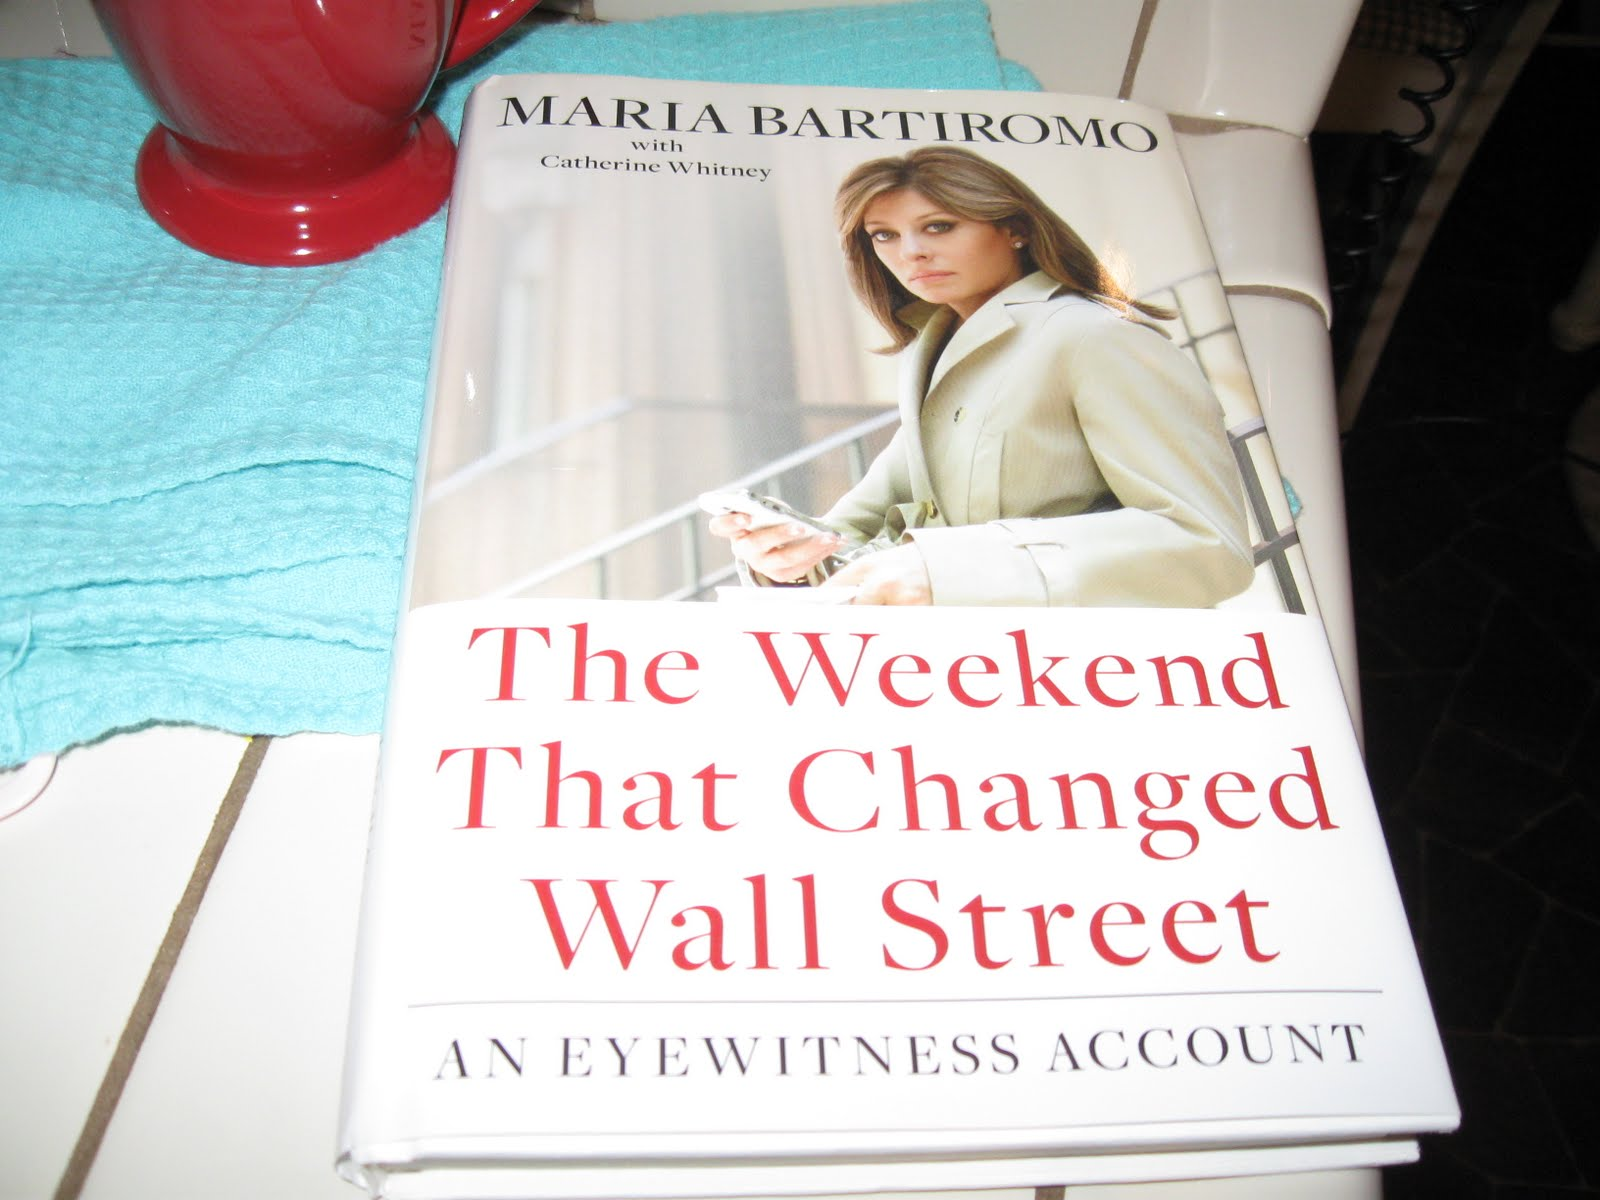 the weekend that changed wall street whitney catherine bartiromo maria